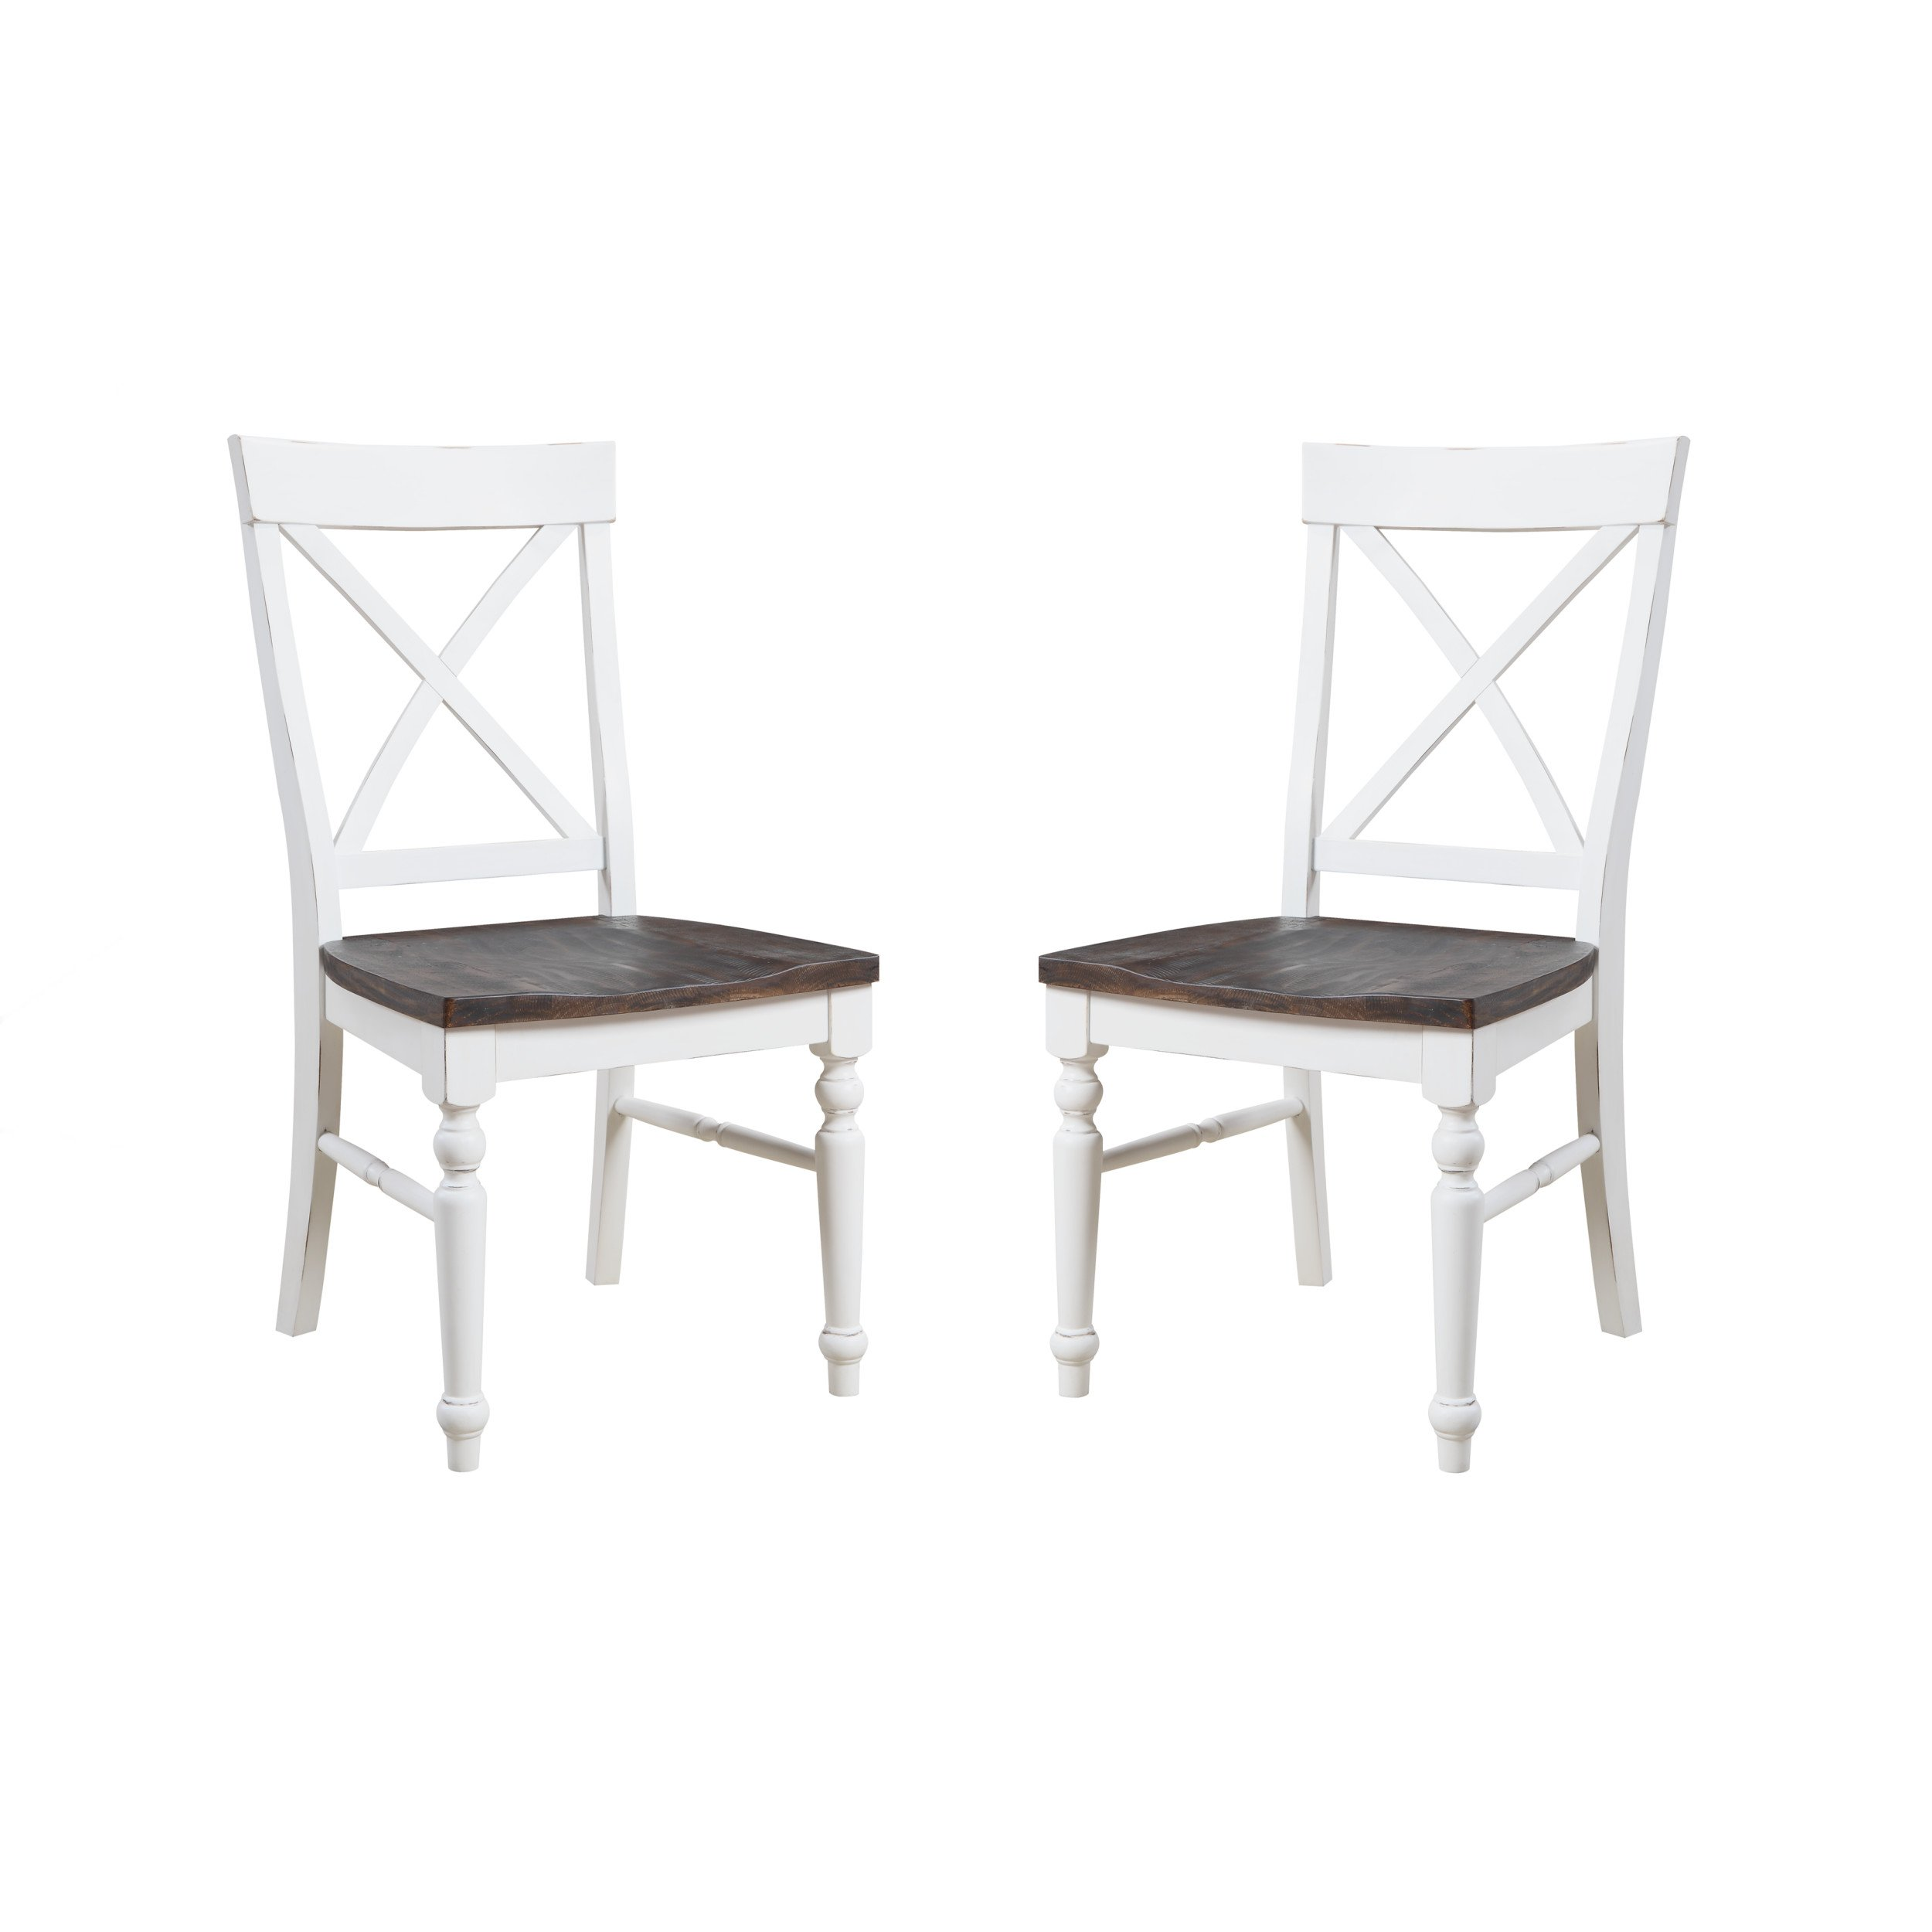 Emerald Home Mountain Retreat Antique White and Dark Mocha Dining Chair with All Wood Frame, X Back, And Contrasting Seat, Set of Two by Emerald Home Furnishings